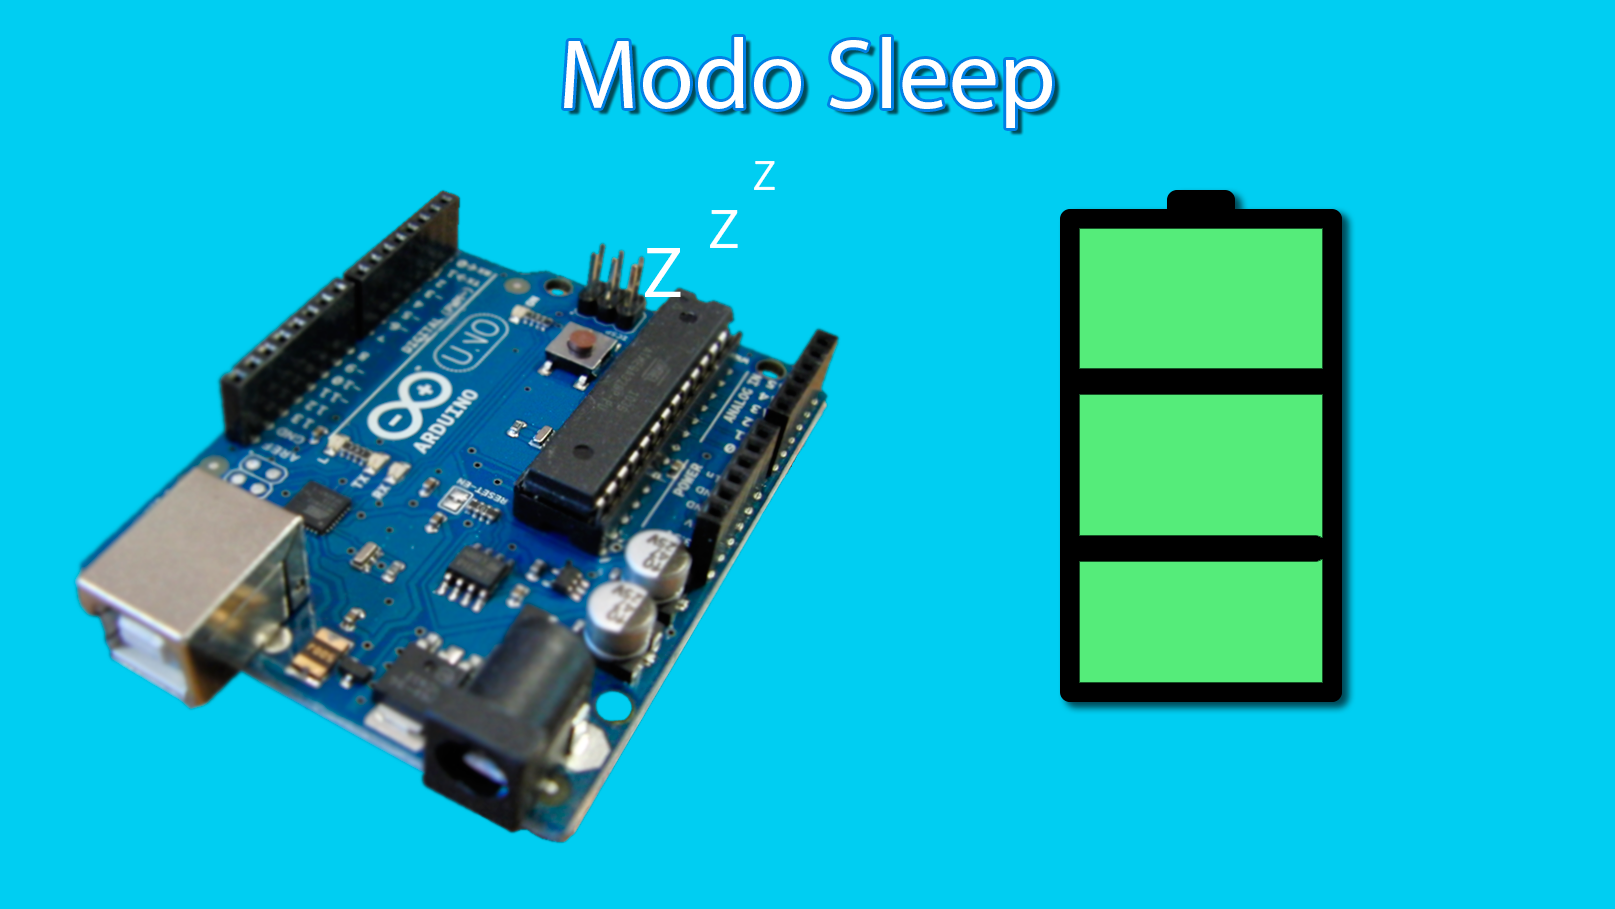 modo sleep do arduino